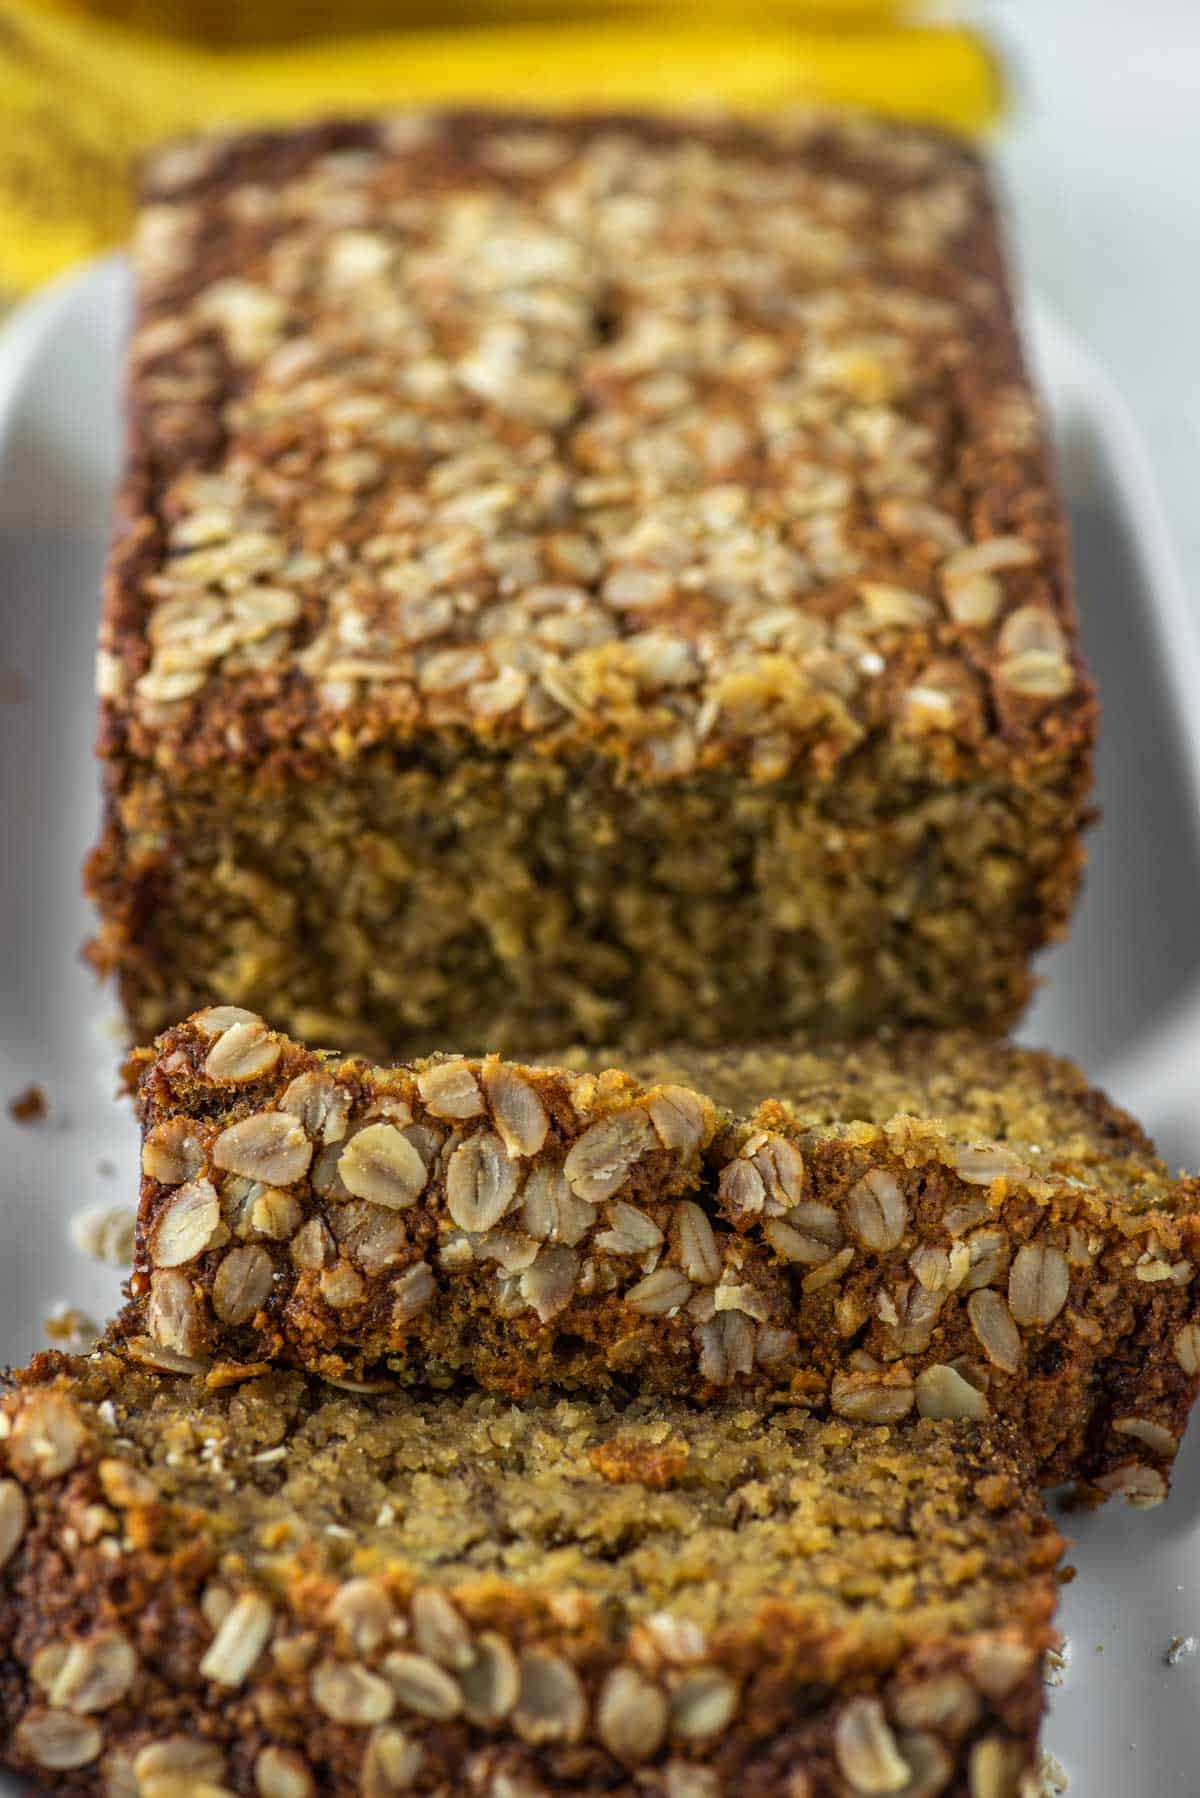 close-up of banana bread made with oats on plate